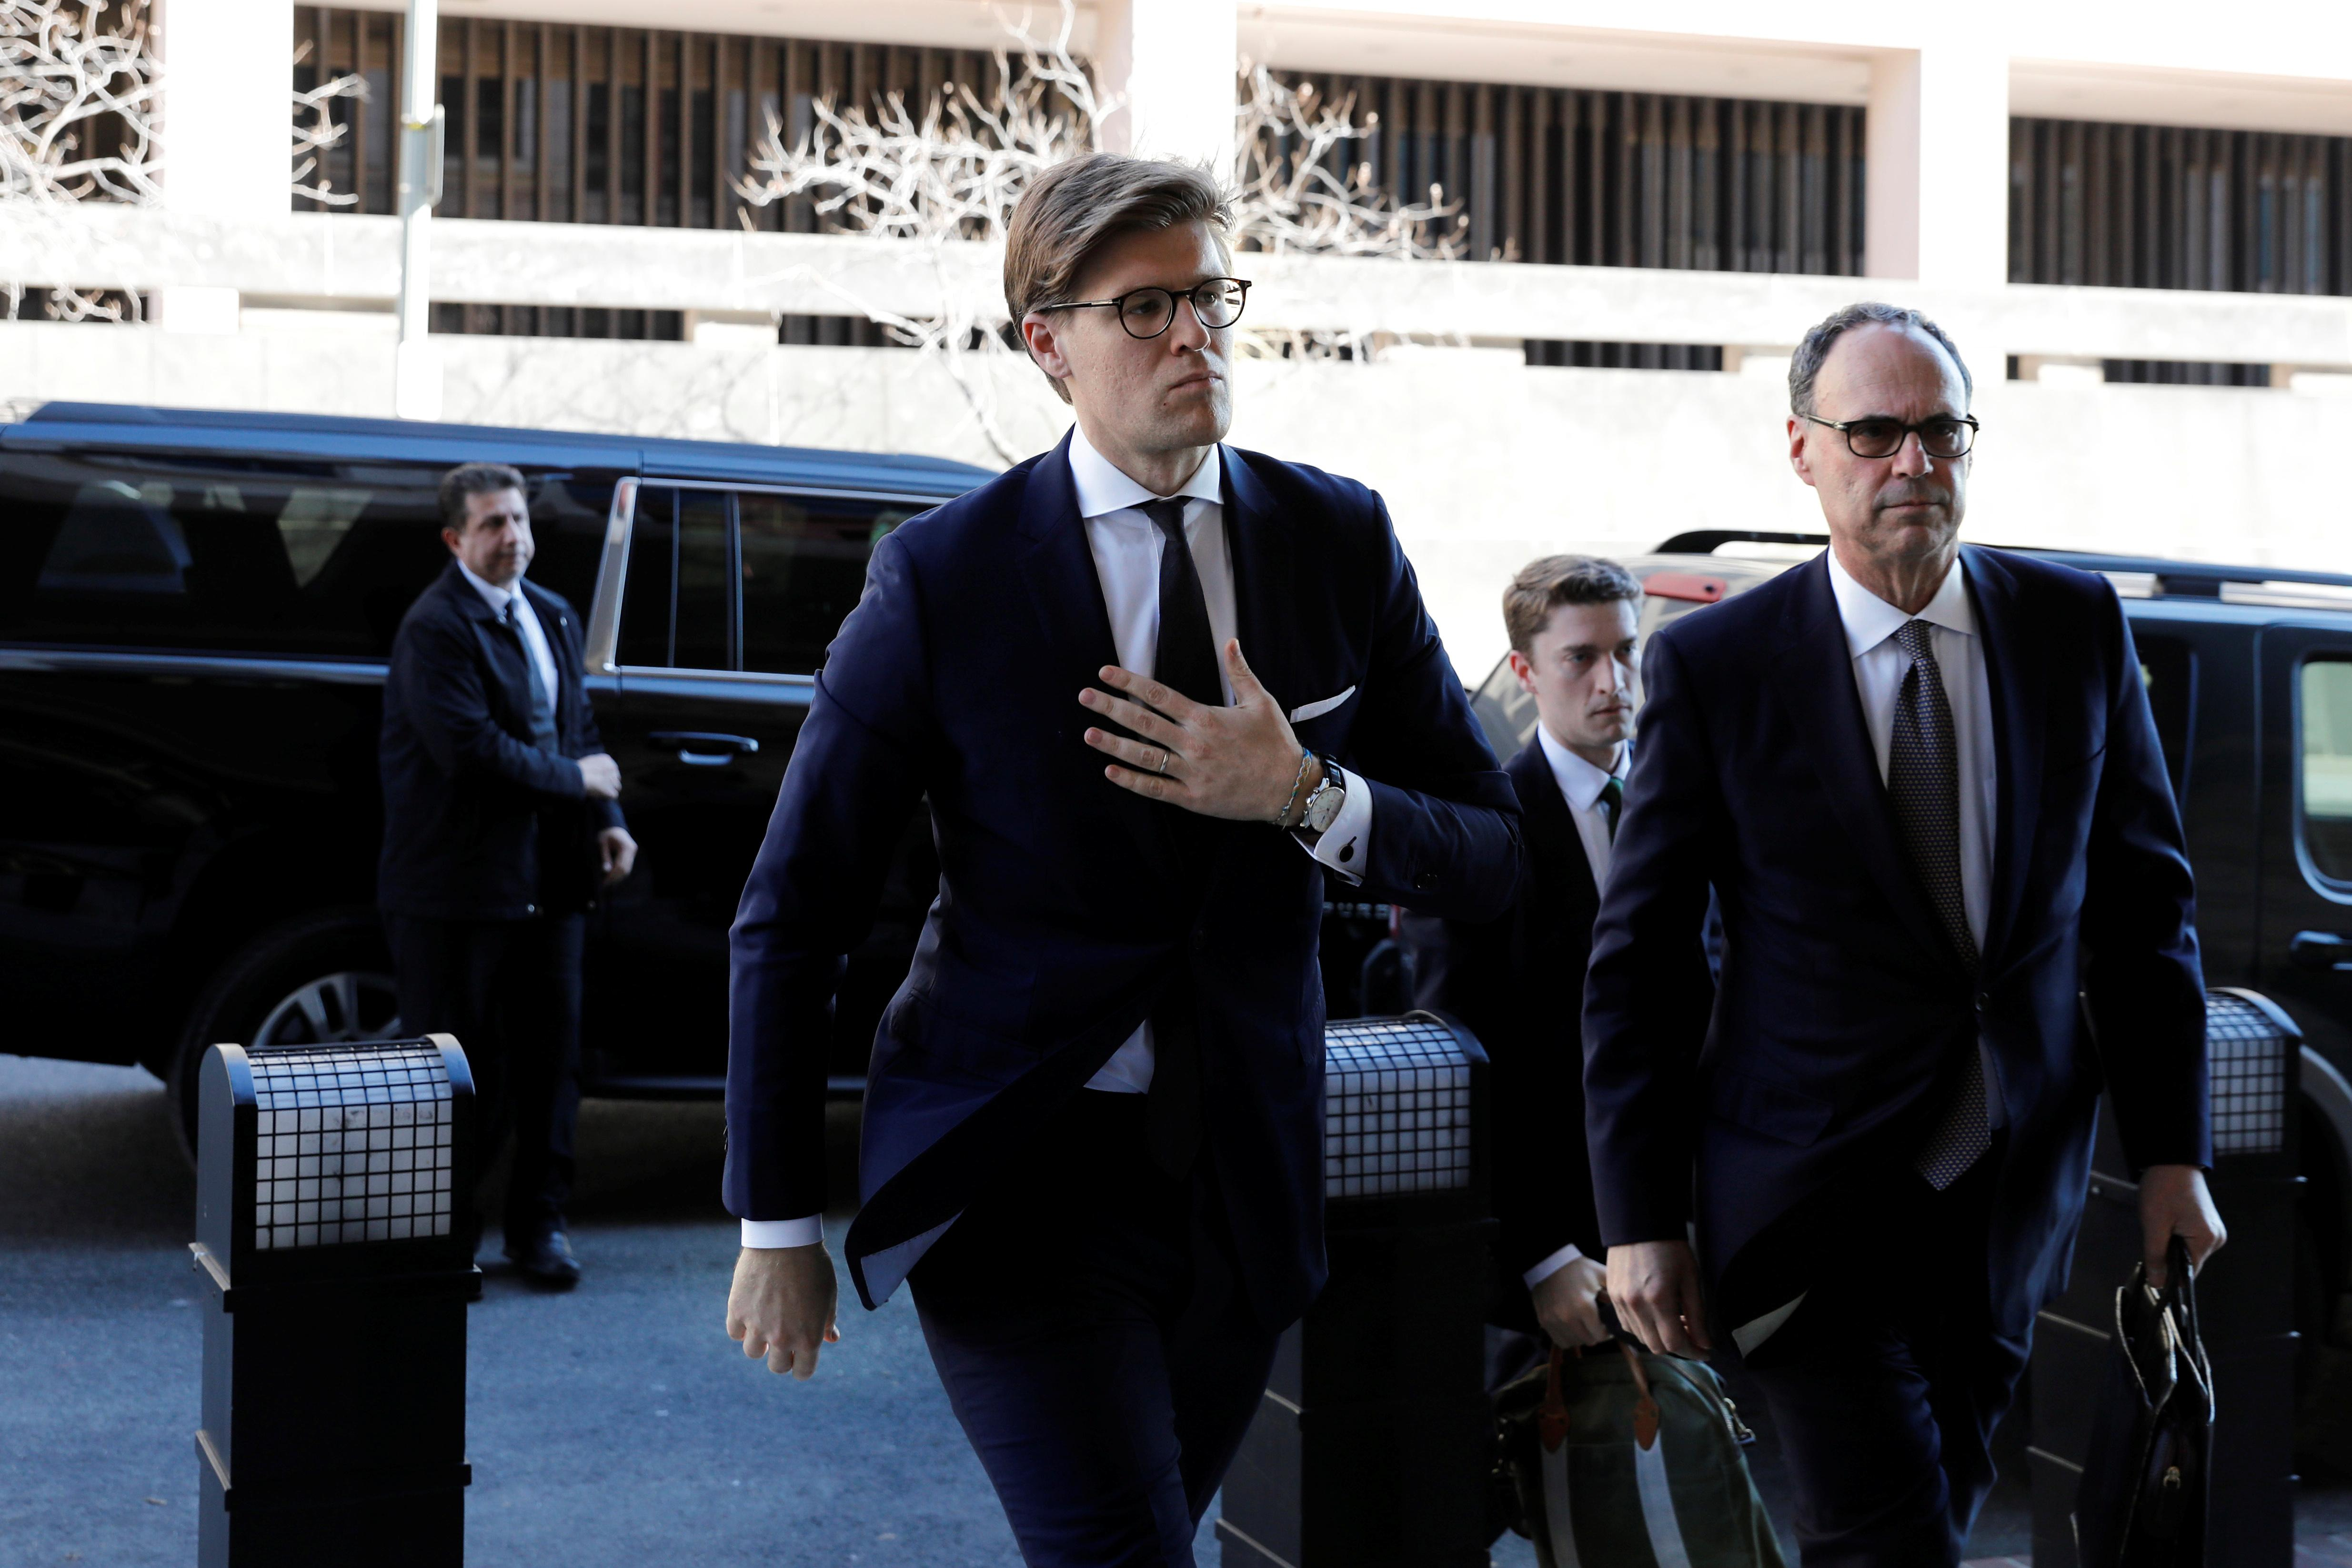 Alex van der Zwaan arrives at a plea agreement hearing at the D.C. federal courthouse in Washington, U.S., February 20, 2018. Yuri Gripas